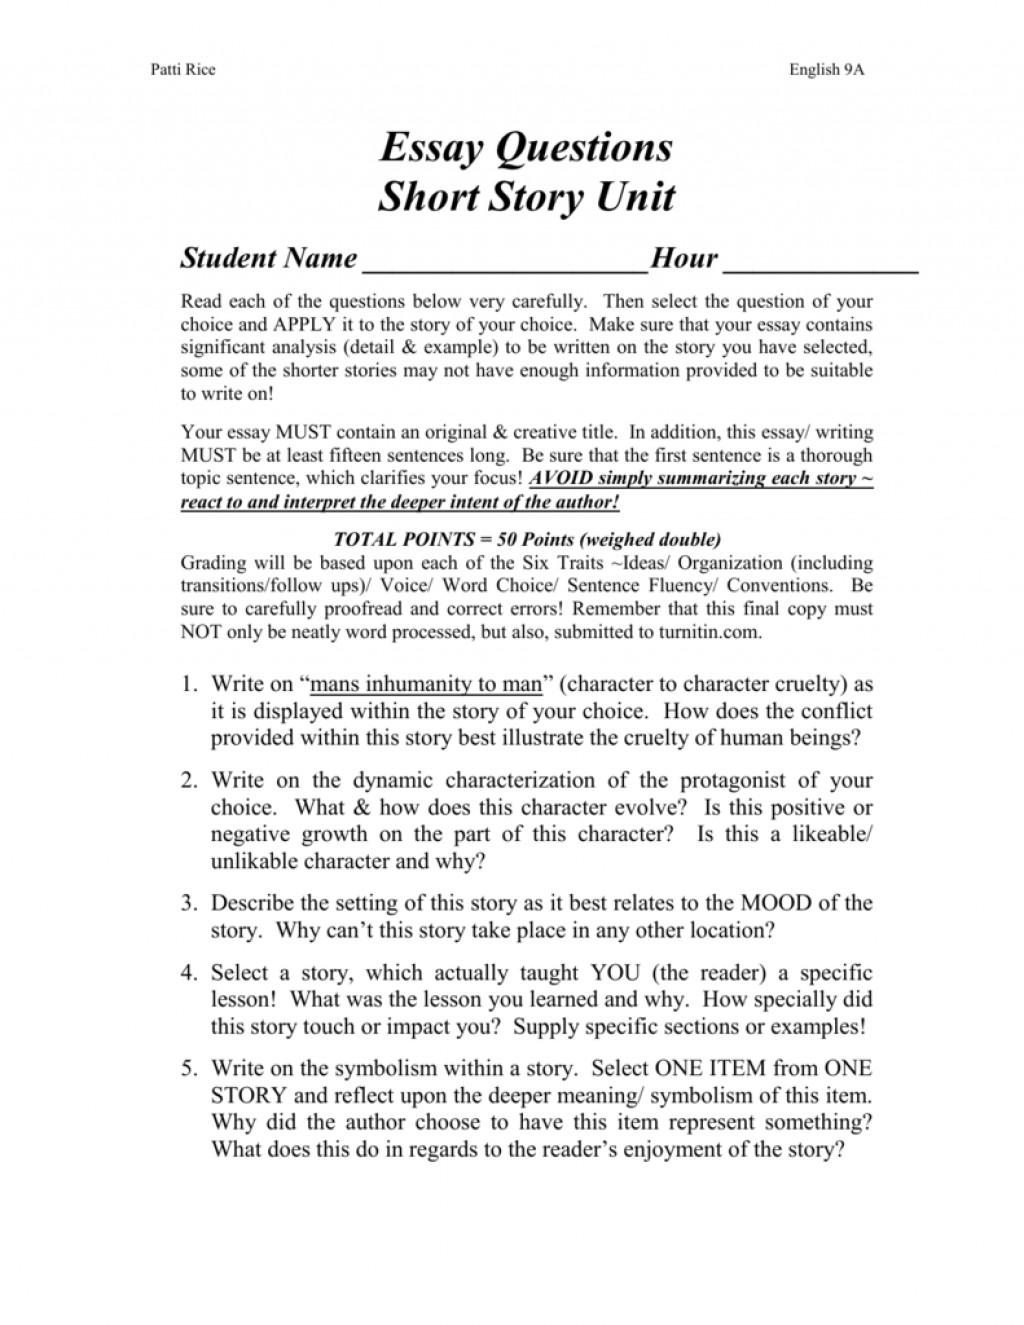 007 008001643 1 Short Stories In Essays Essay Impressive Story Analysis Examples And One Act Plays Fiction Large